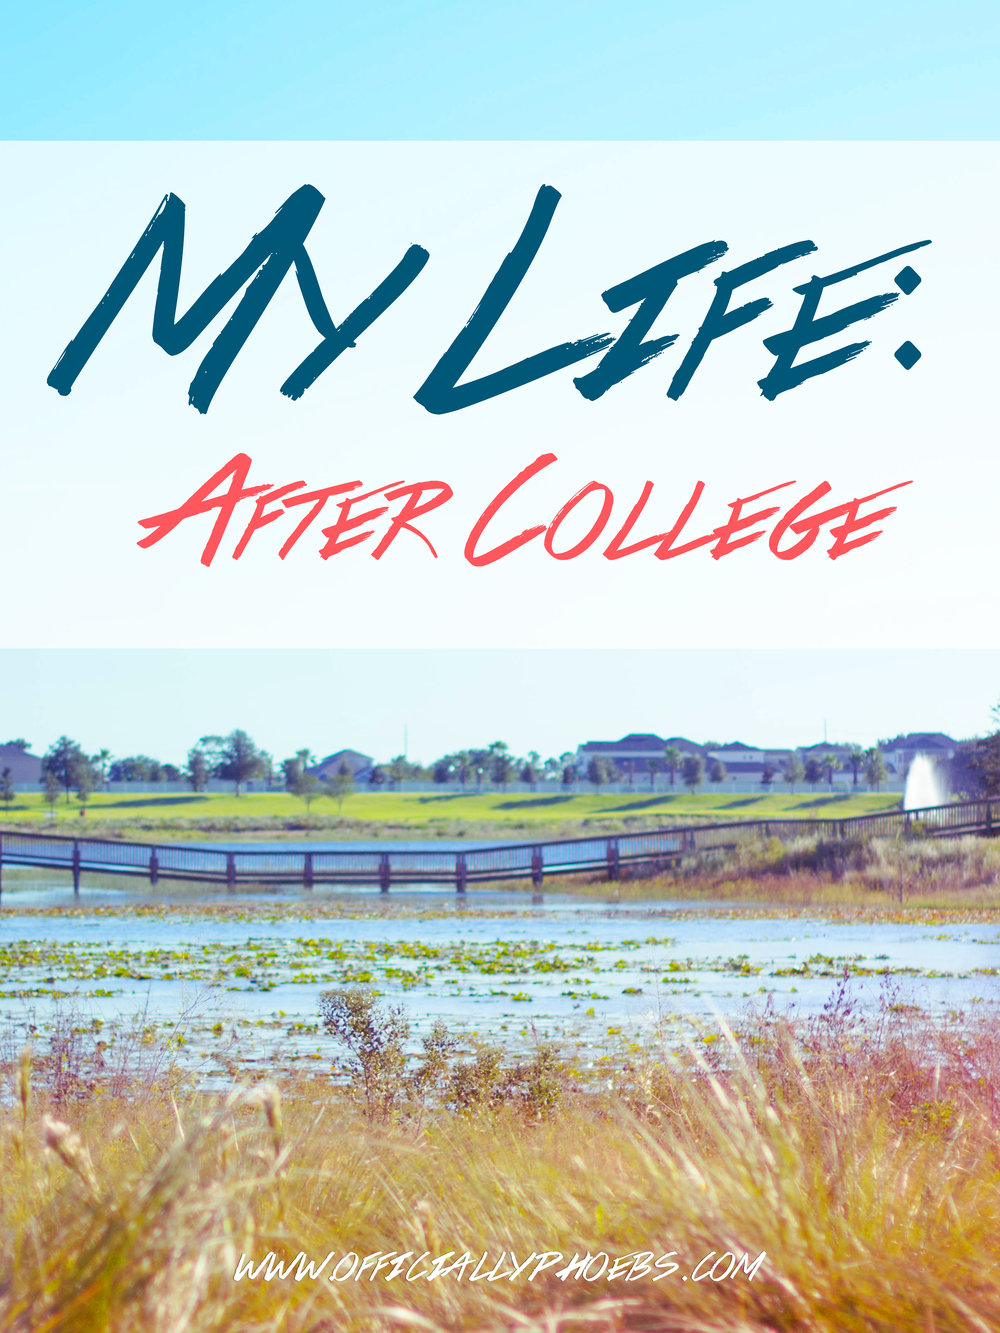 MyLifeAfterCollege_OfficiallyPhoebs